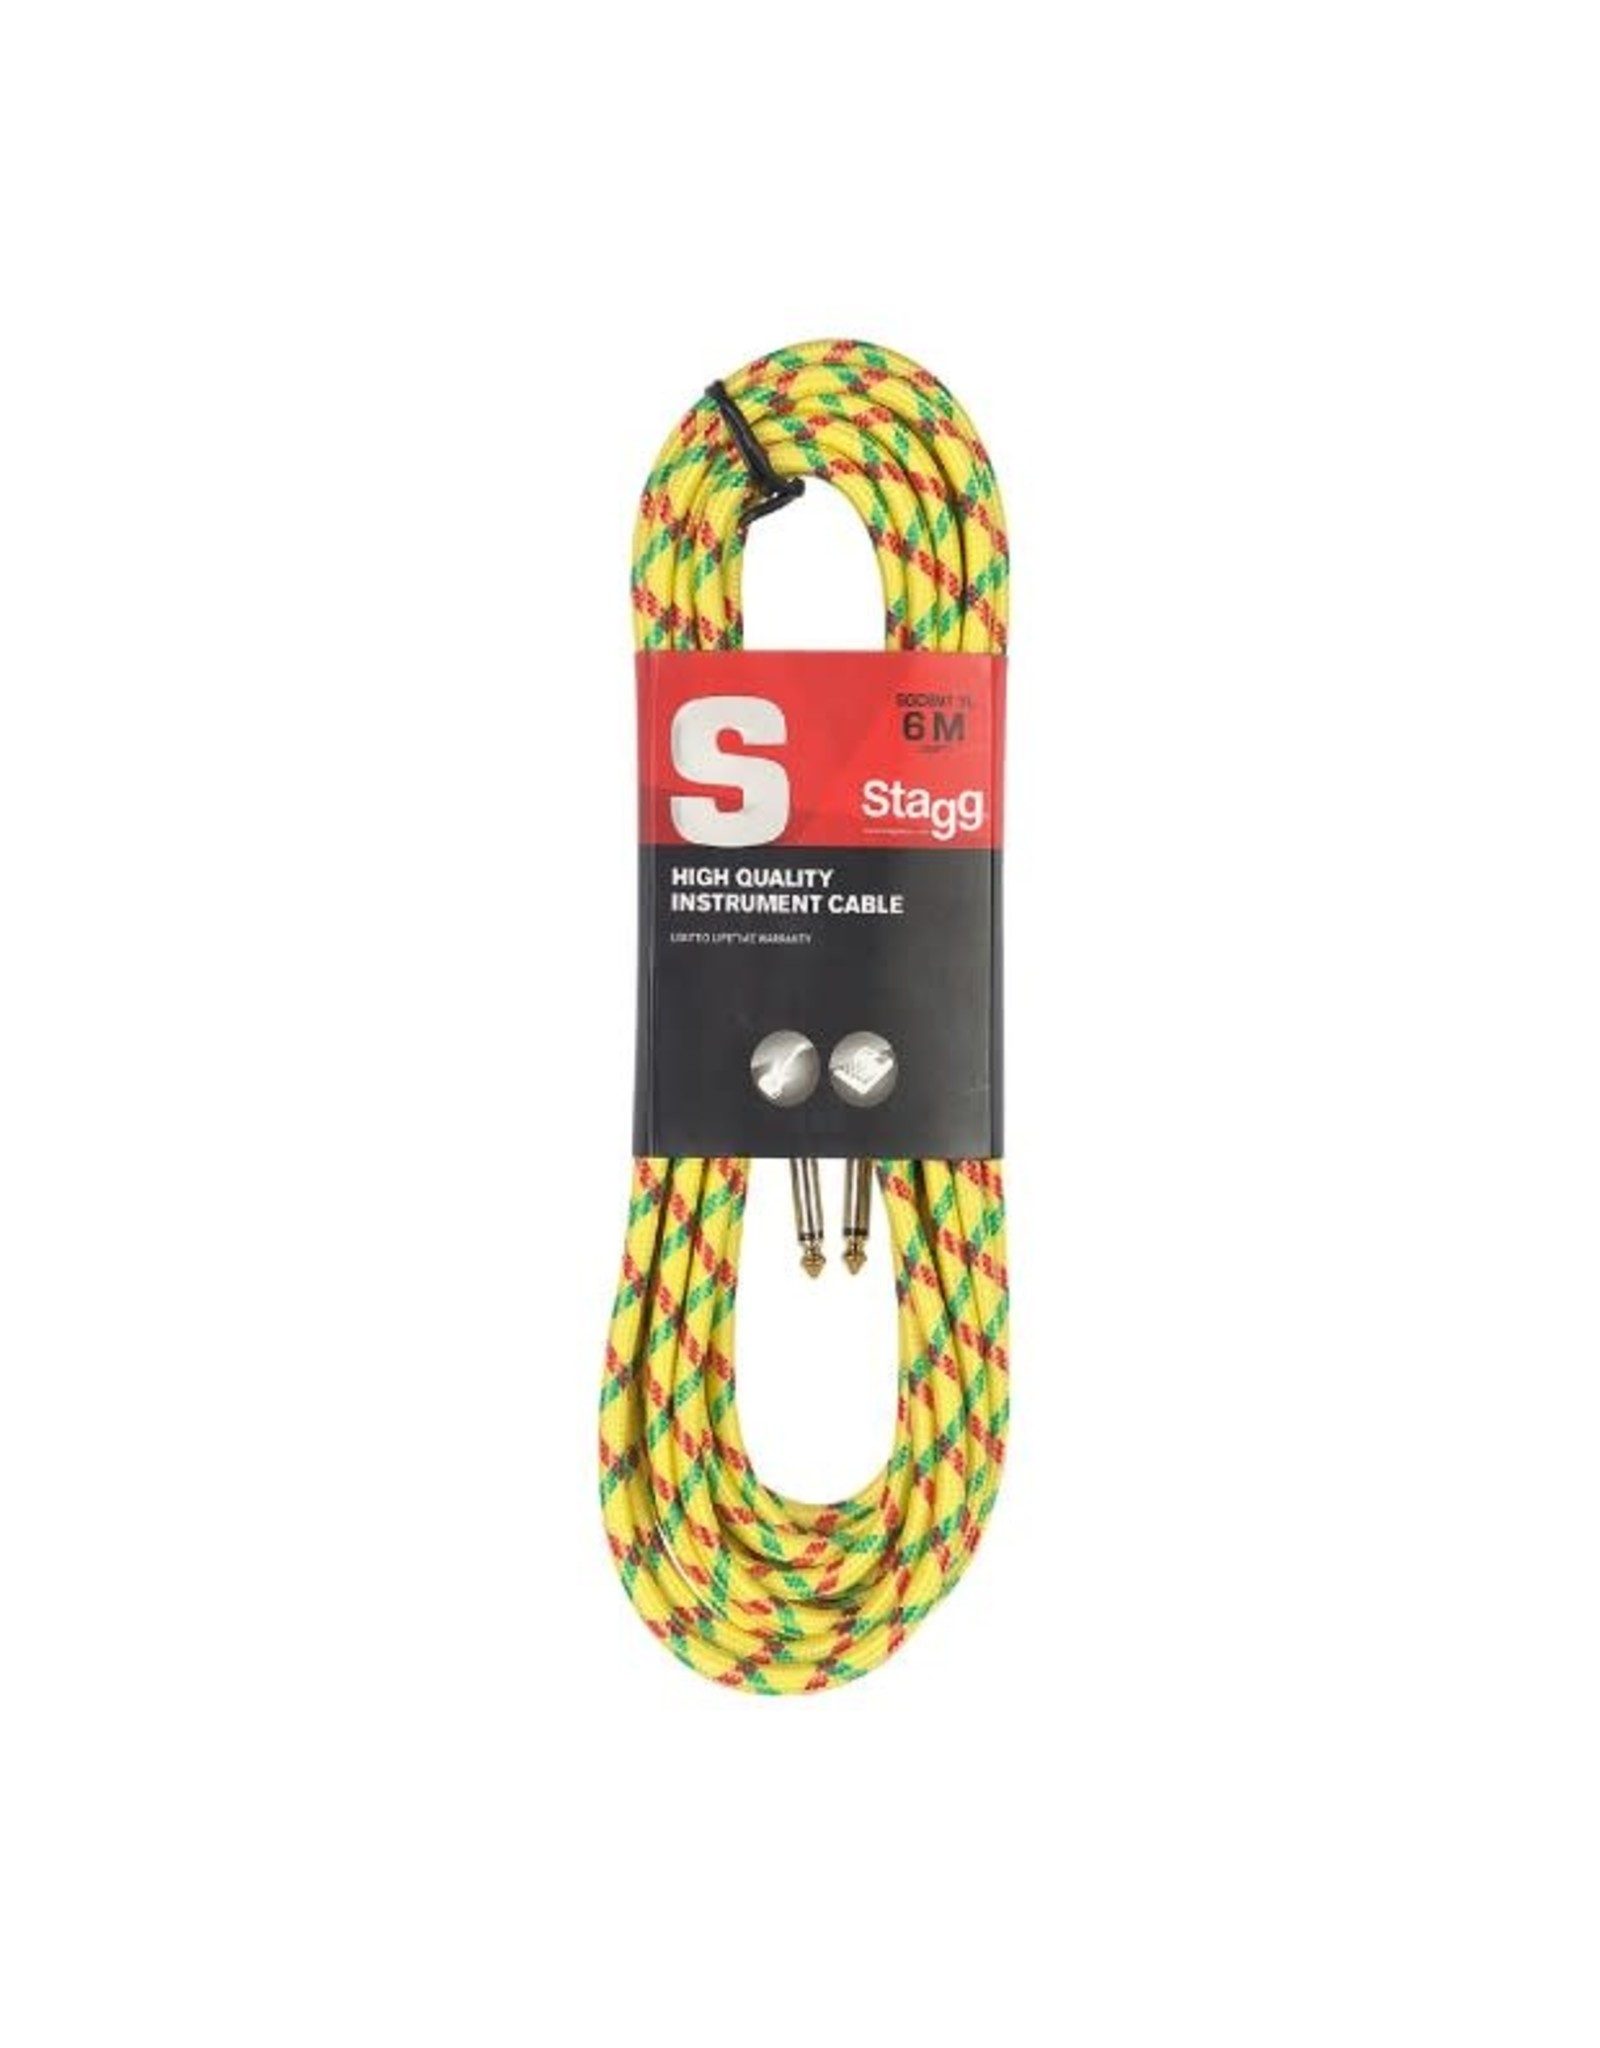 Stagg Stagg S-Series Vintage Tweed Style Instrument Cable 6M 20 ft Yellow